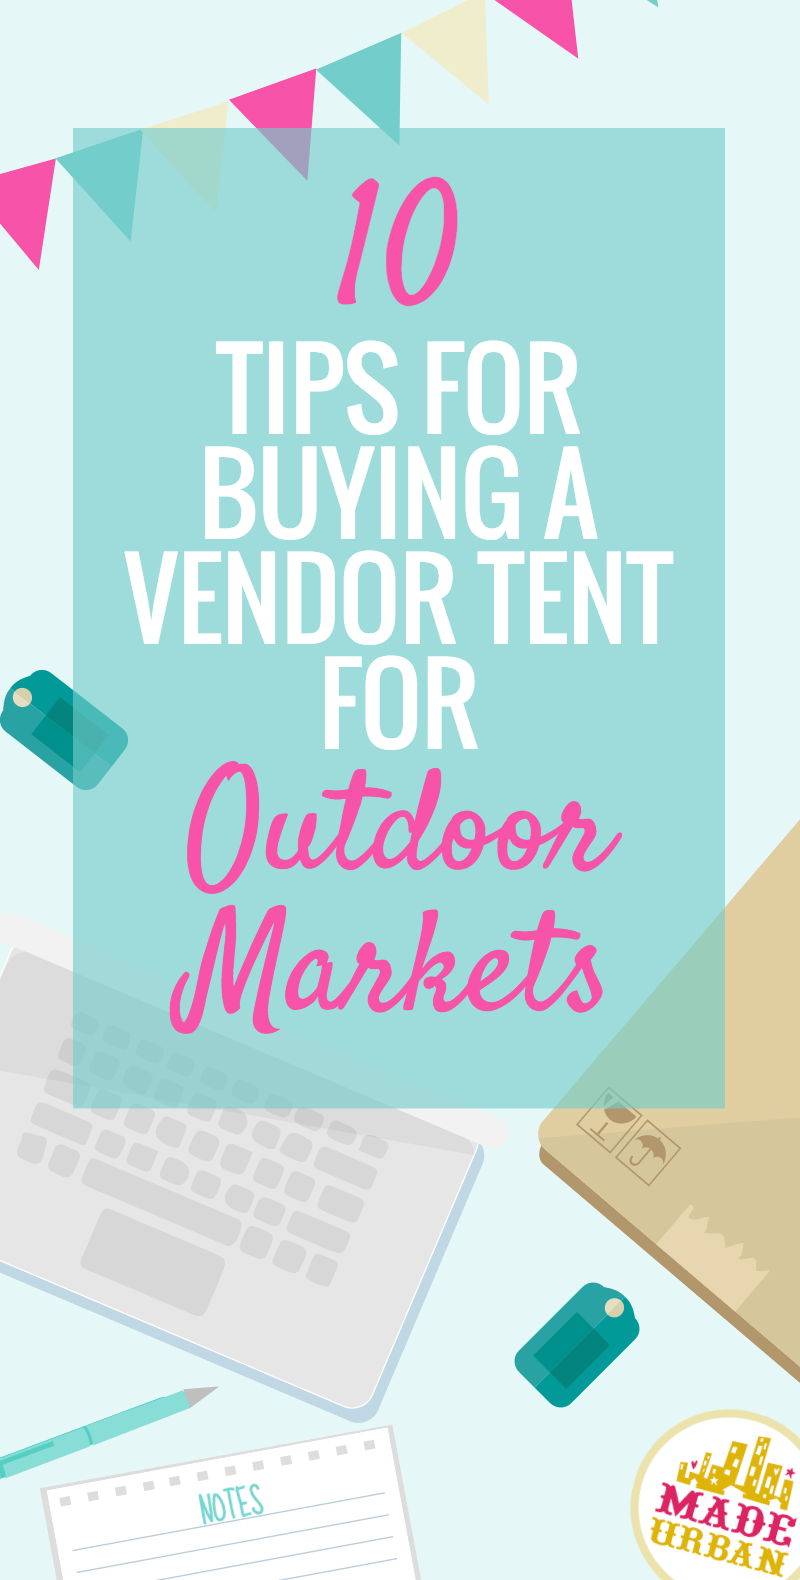 Tips for buying a vendor tent for outdoor markets